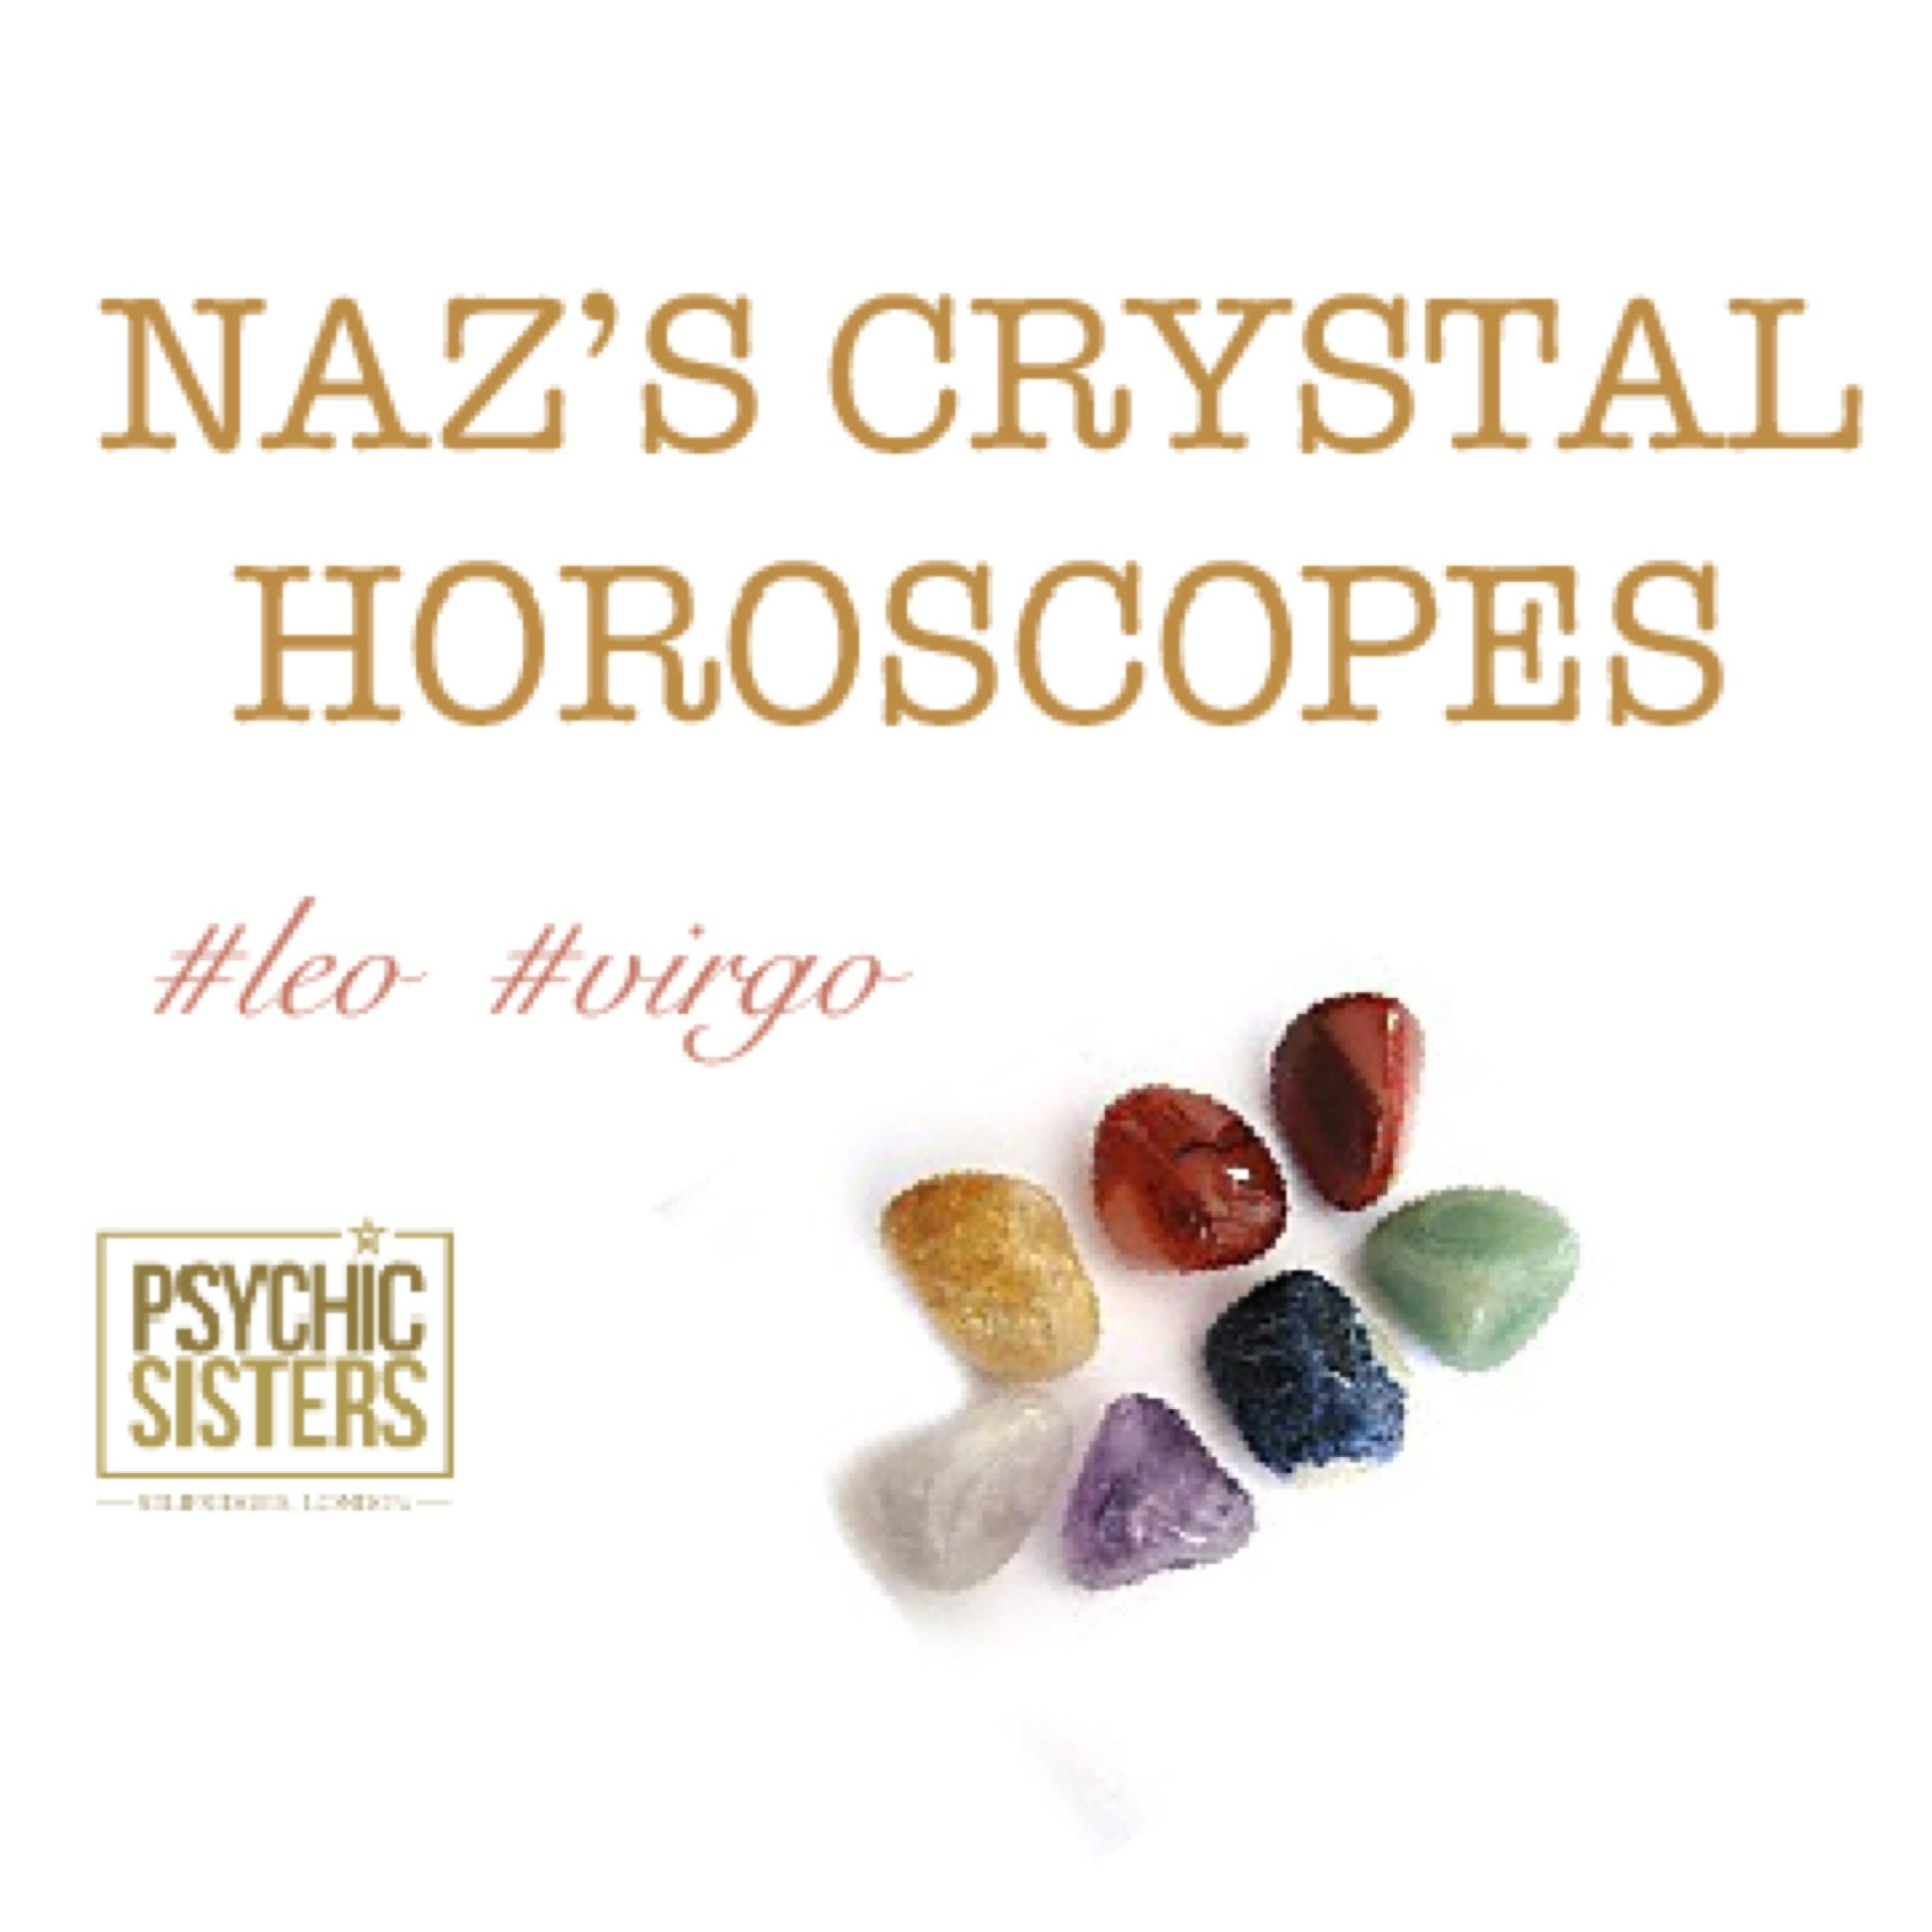 Naz's Crystal Horoscopes